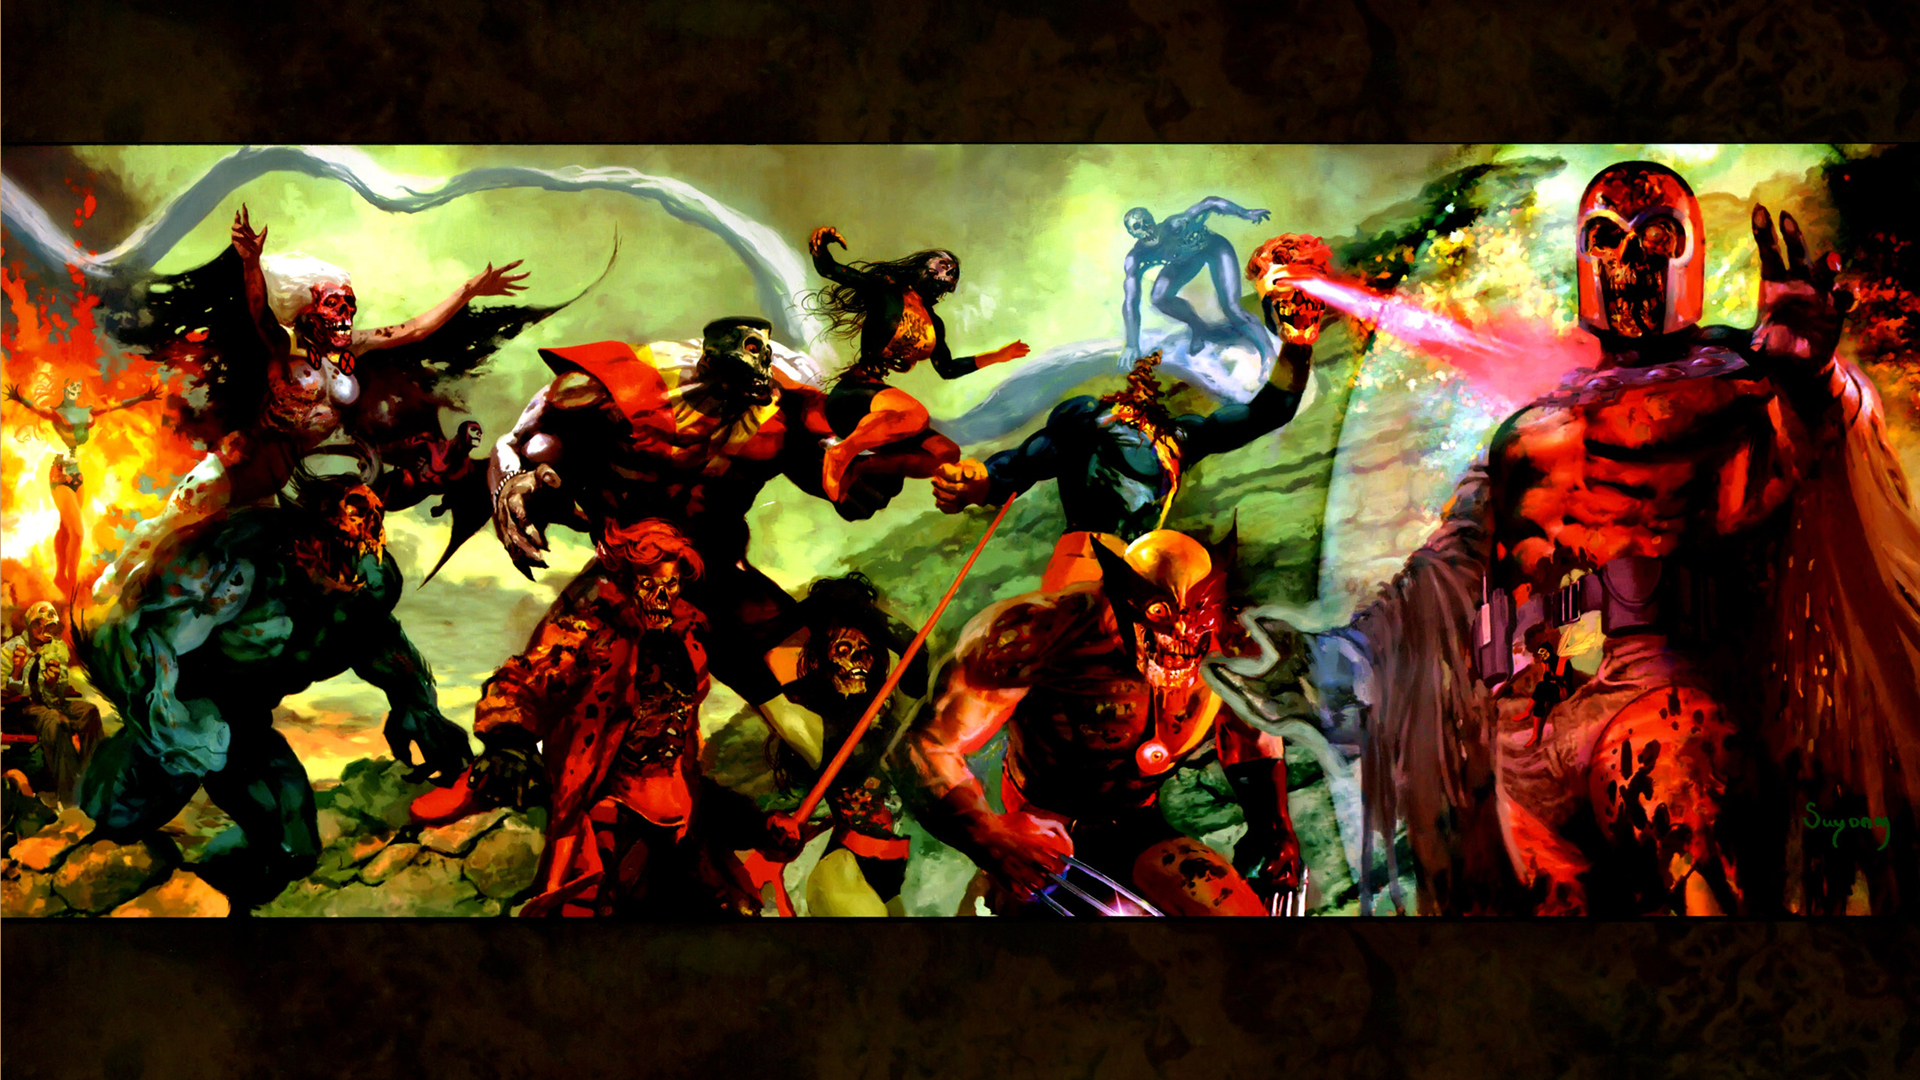 Marvel Zombies Computer Wallpapers Desktop Backgrounds 1920x1080 1920x1080